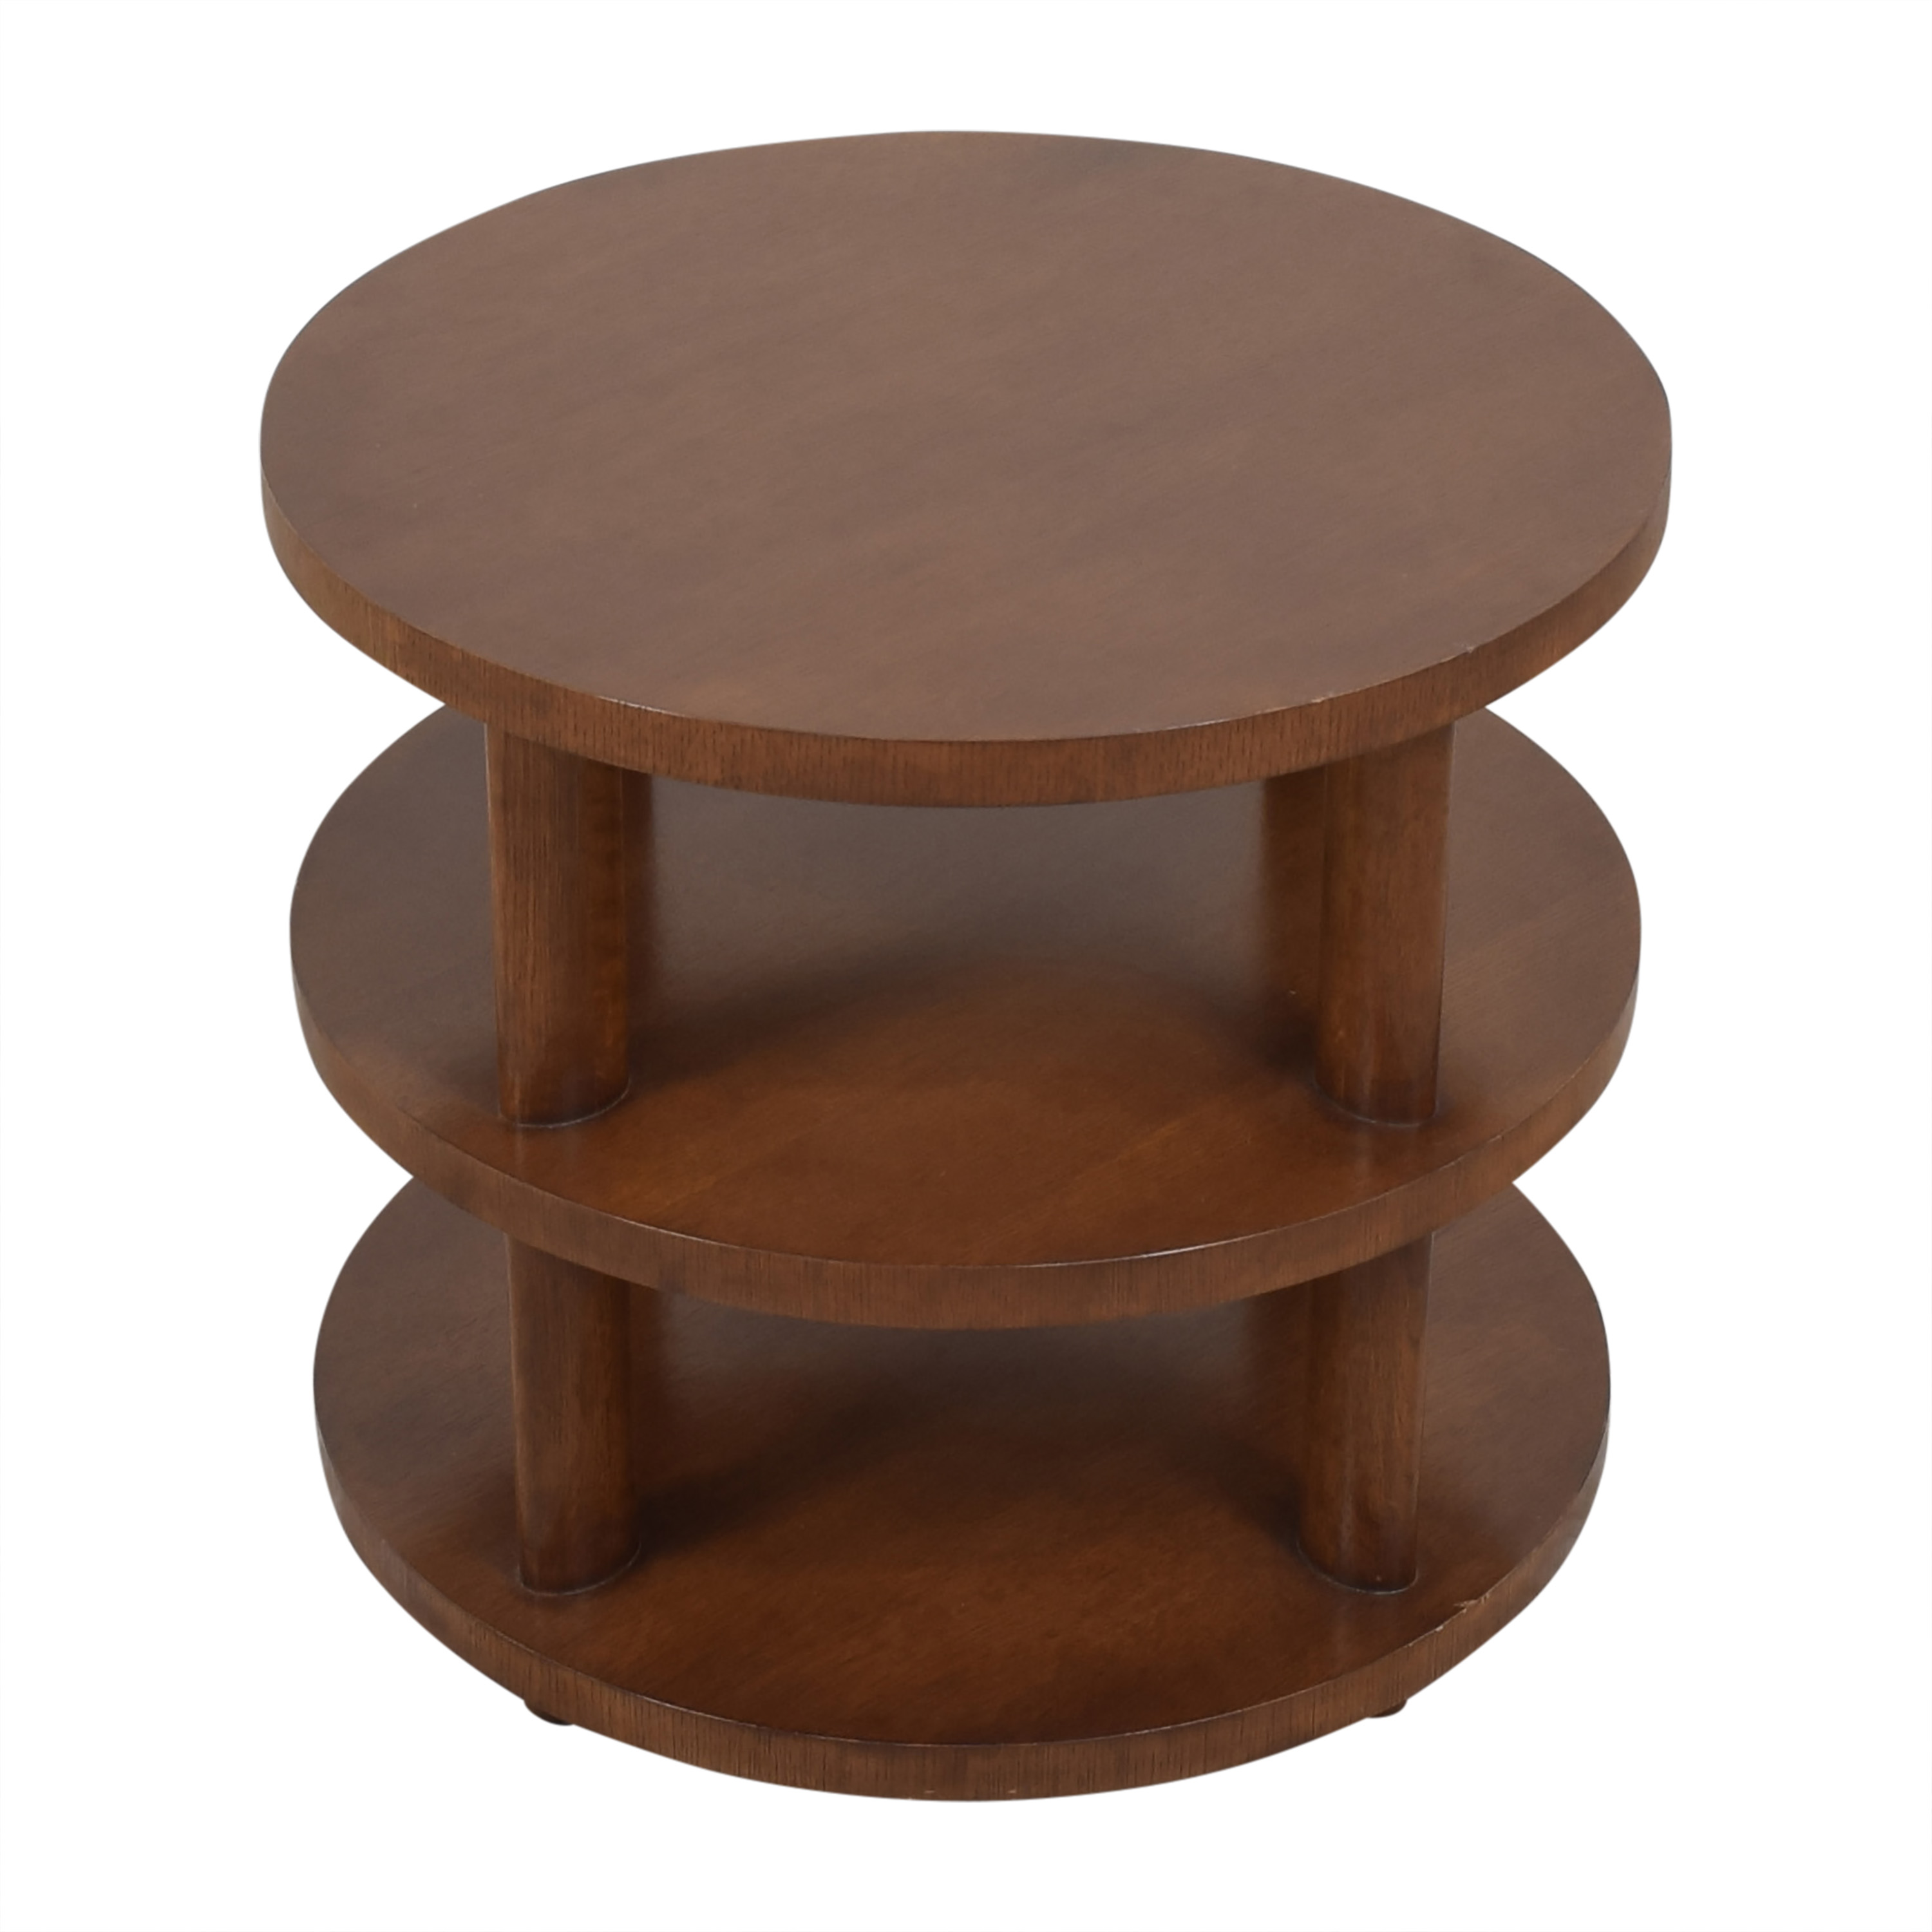 shop Baker Furniture Barbara Barry Round Tiered Occasional Table Baker Furniture Tables